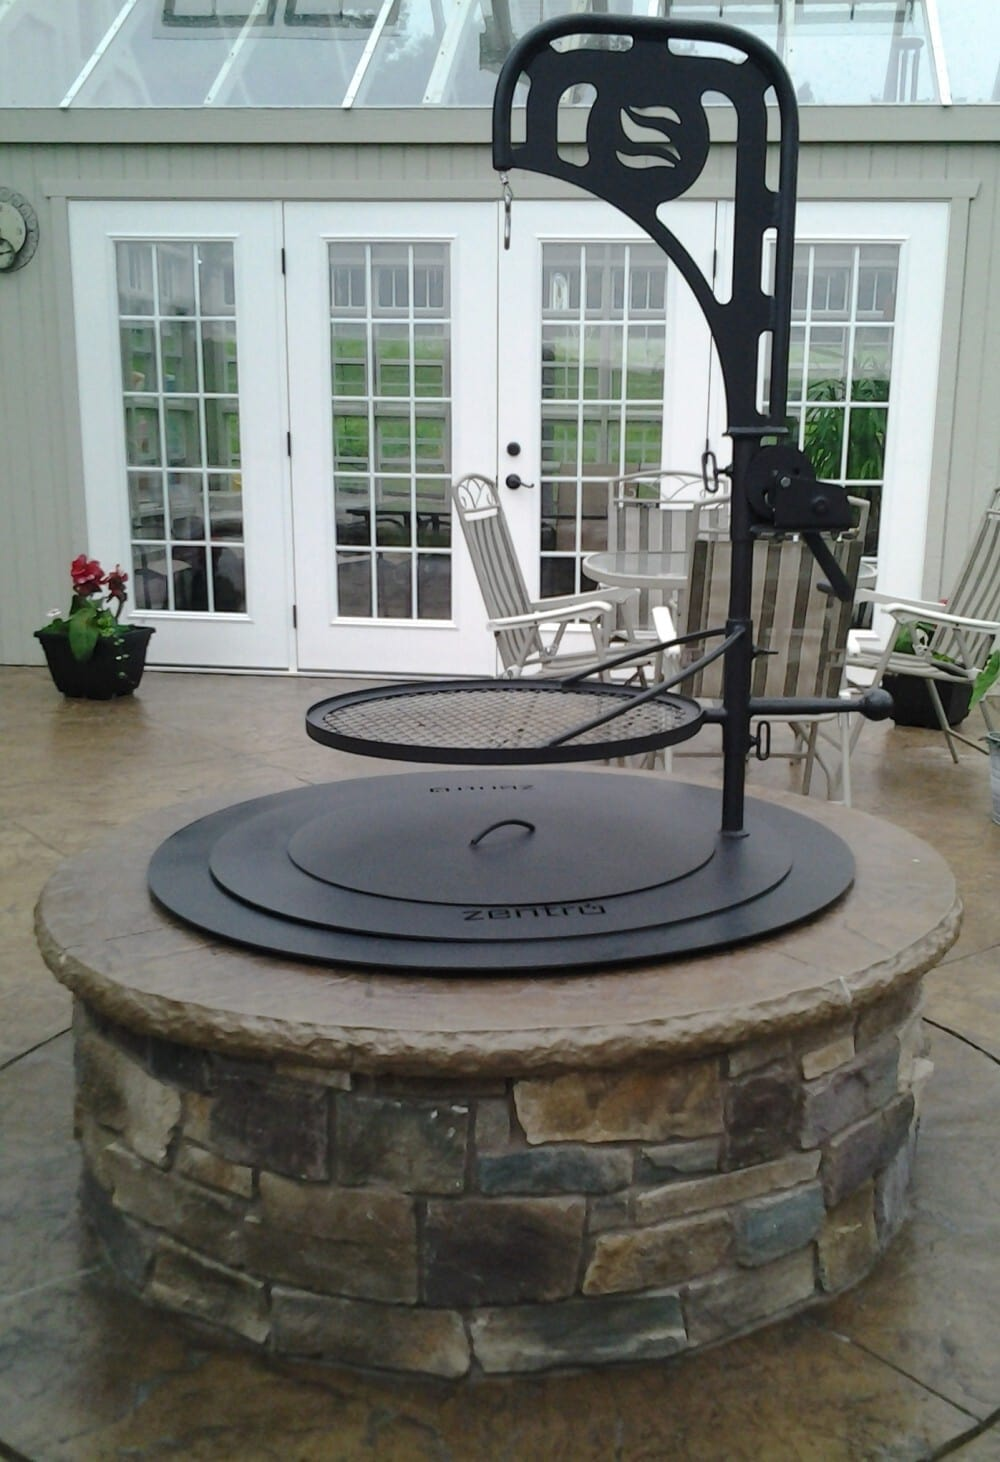 baskets alfresia pit main burner rings fire burners at and steel log caicos barbecue lantern pits grills black